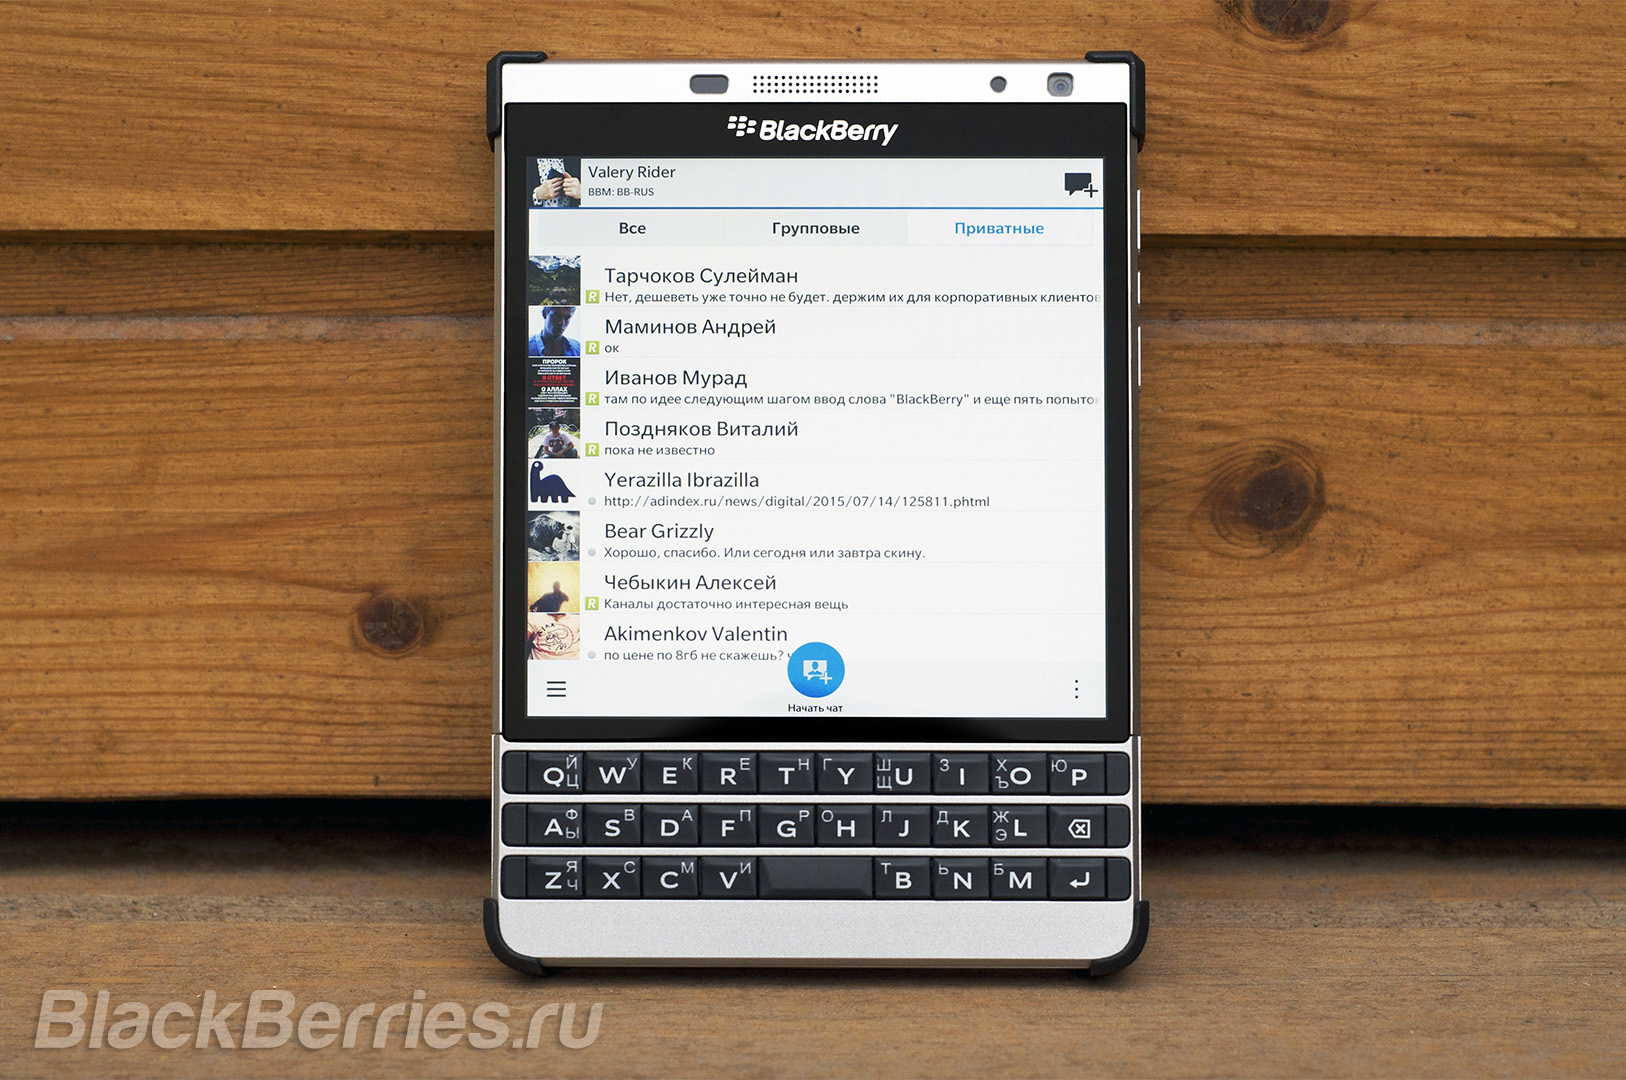 BlackBerry-Passport-SE-VKontakte